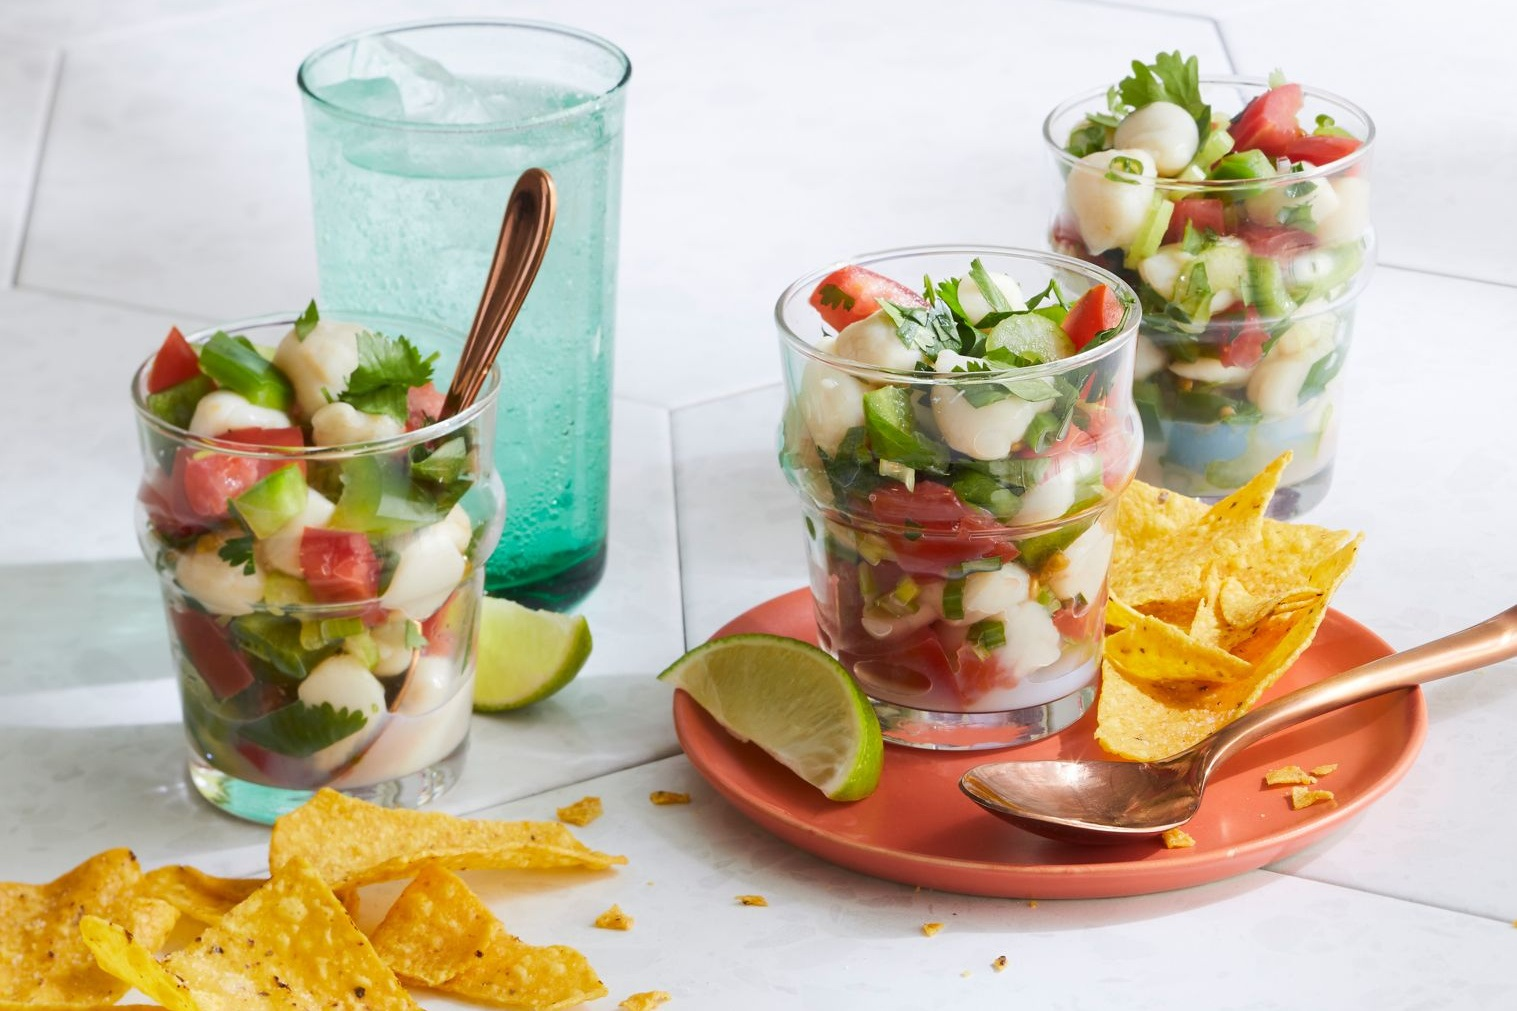 individual servings of ceviche with tortilla chips